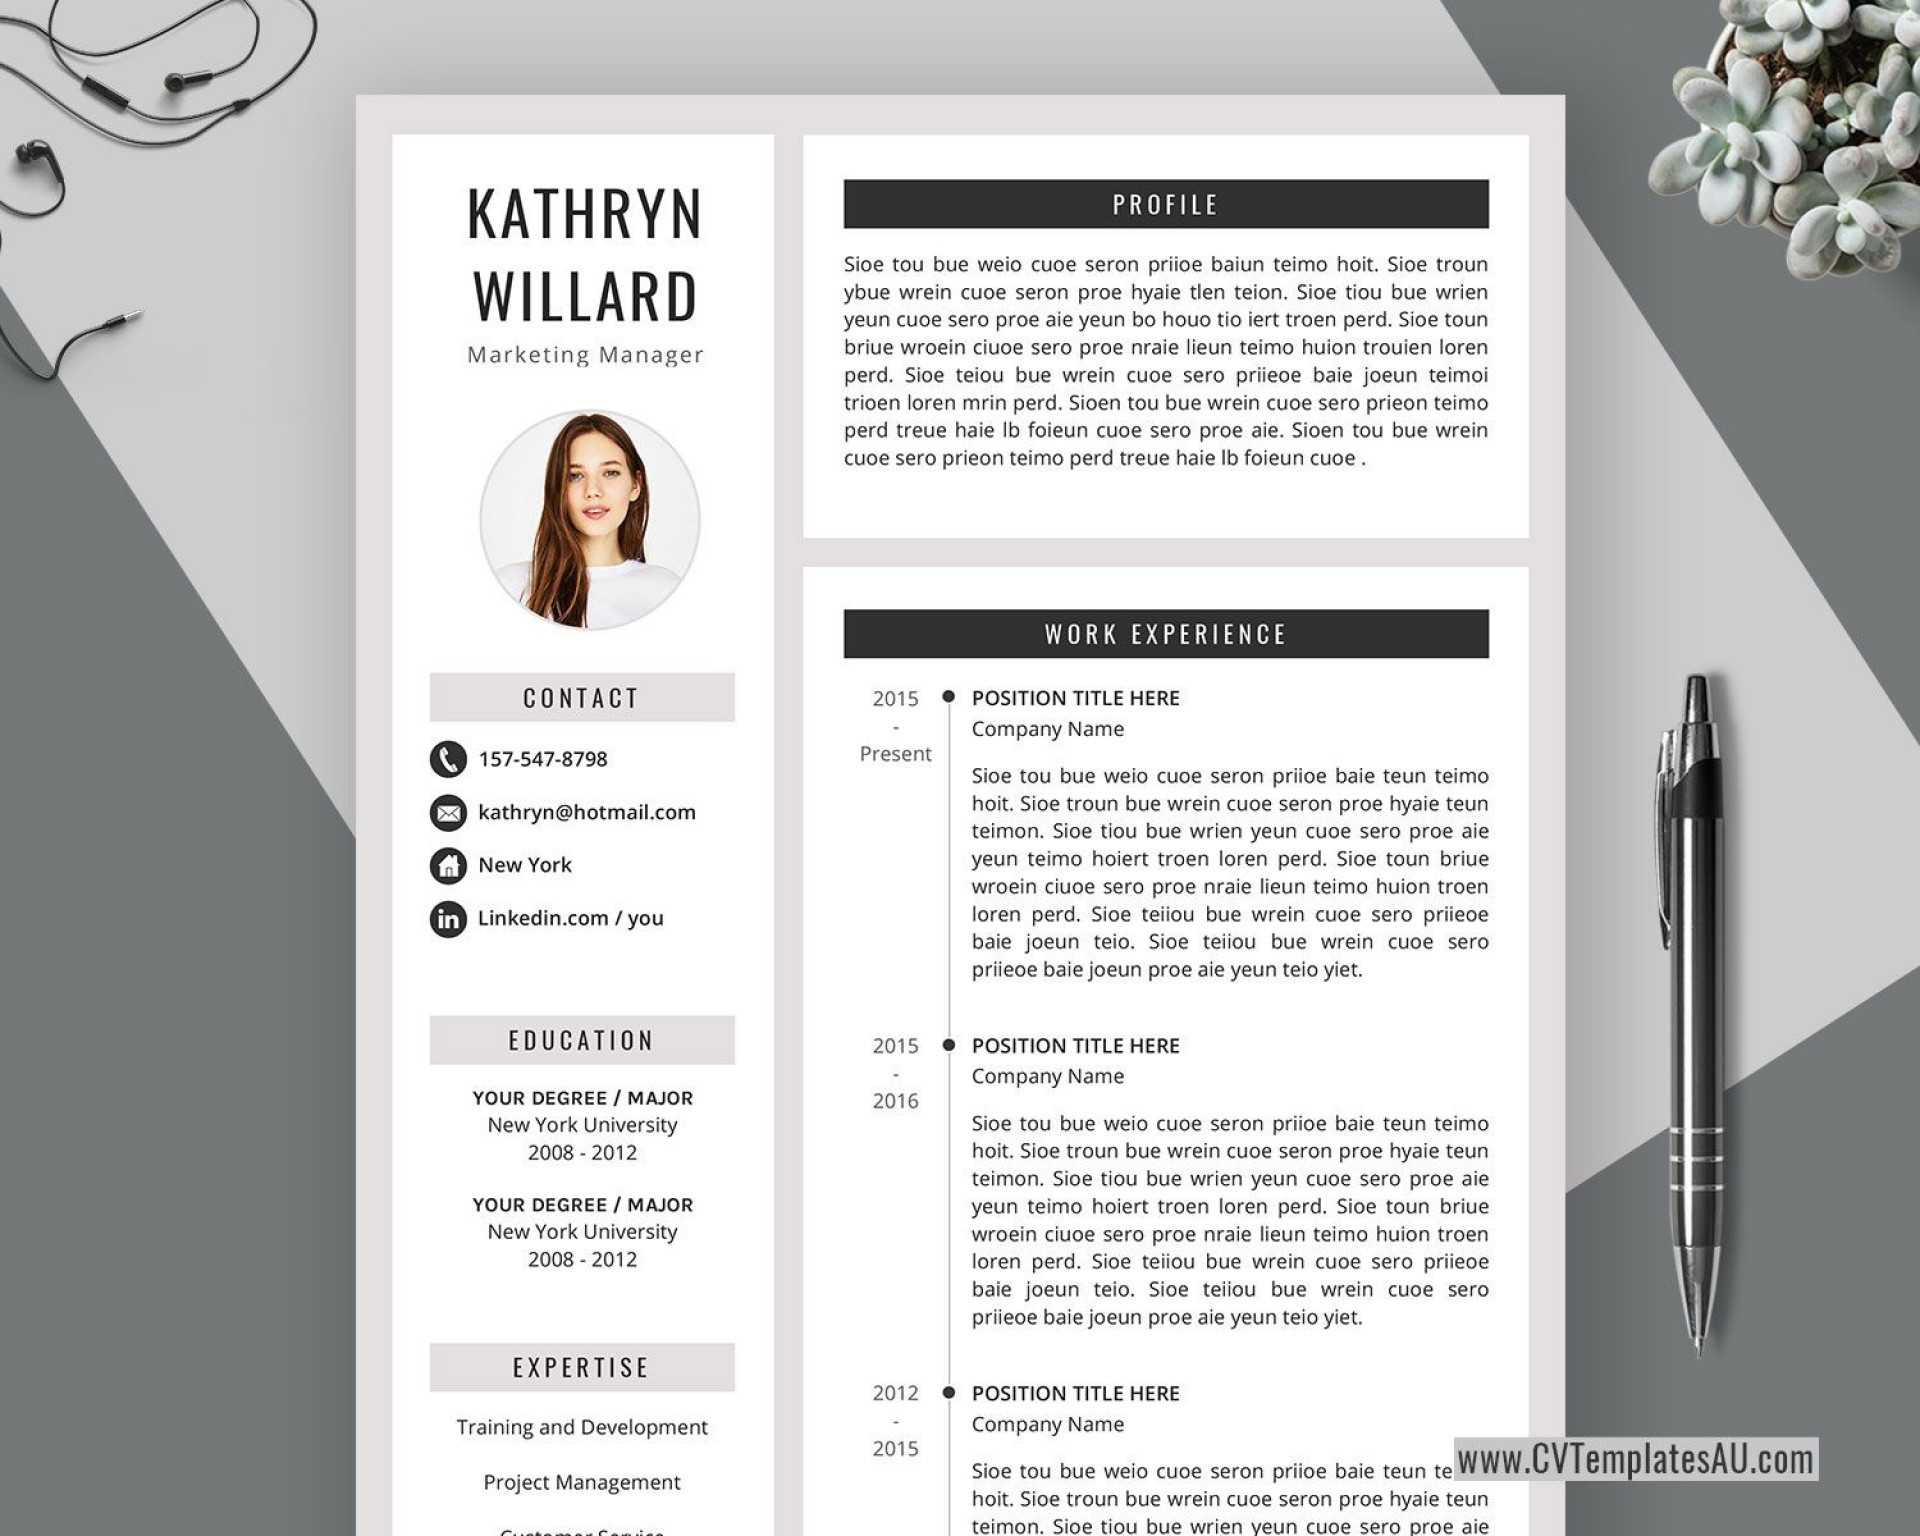 004 Formidable Curriculum Vitae Word Template Concept  Templates Download M 2019 Cv Free1920